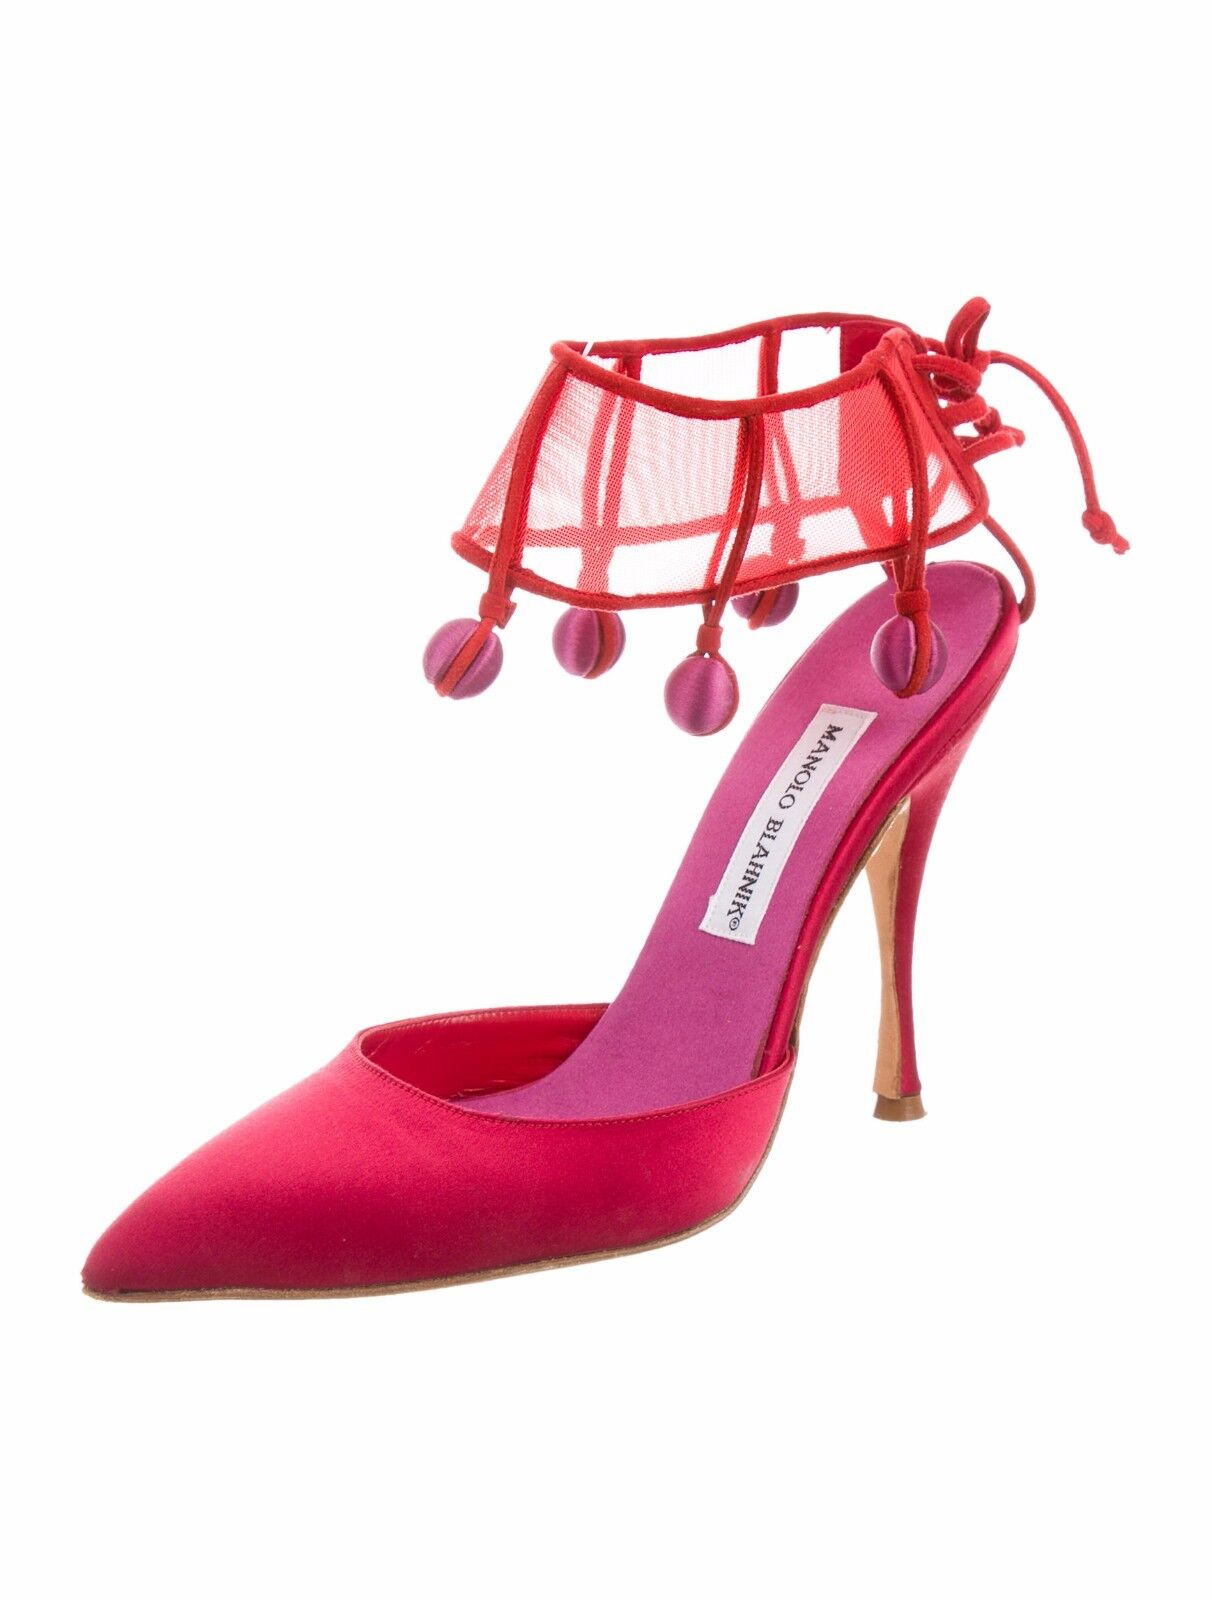 1195 NEW MANOLO BLAHNIK ONCIA ONCIA ONCIA Ankle Straps Pom Pom RED Satin SHOES 38 40.5 RARE 3dd57d